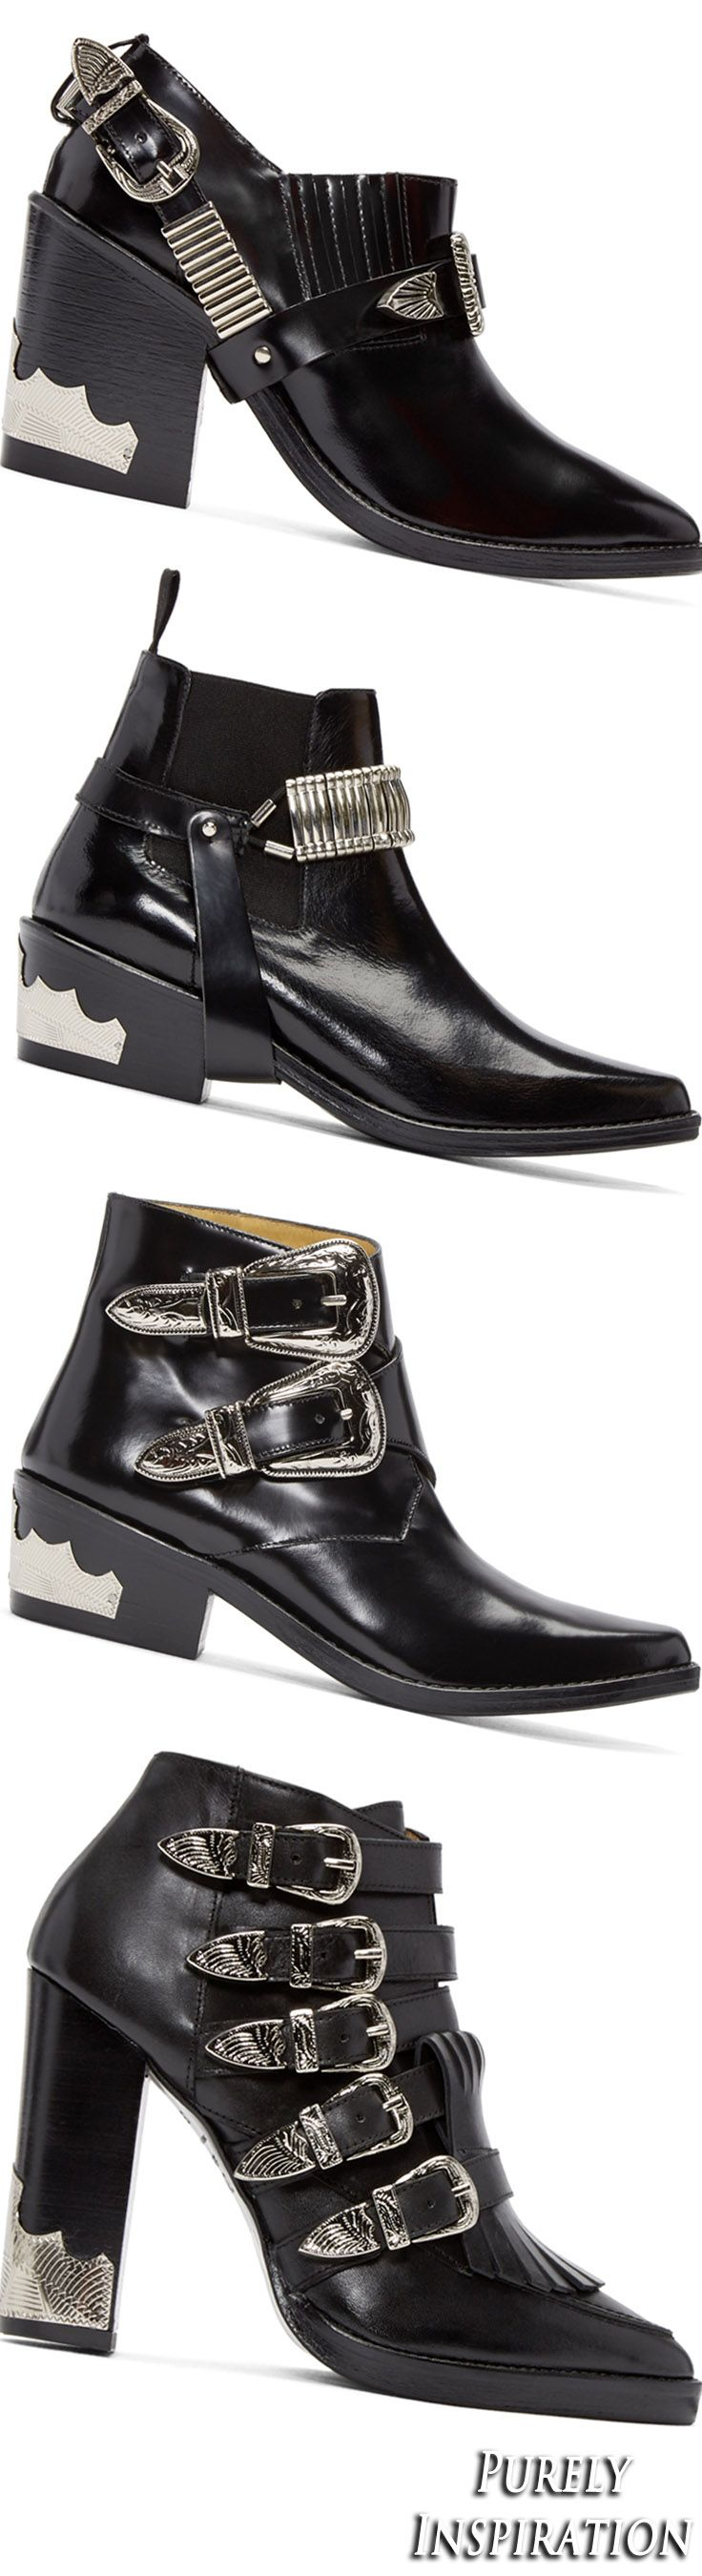 Toga Pulla black leather boots | Purely Inspiration